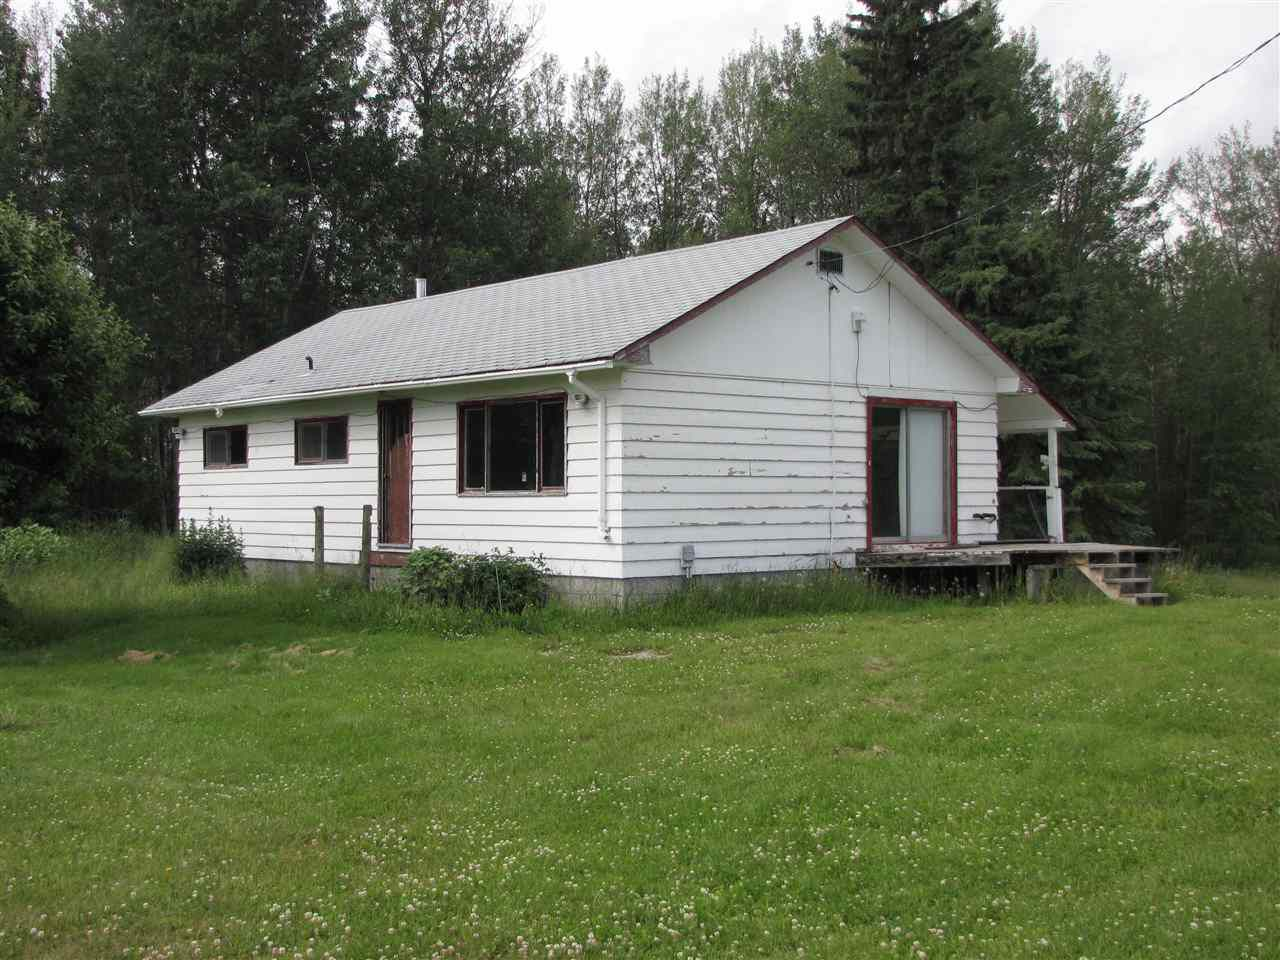 Main Photo: 53516 Highway 765: Rural Lac Ste. Anne County House for sale : MLS®# E4164848